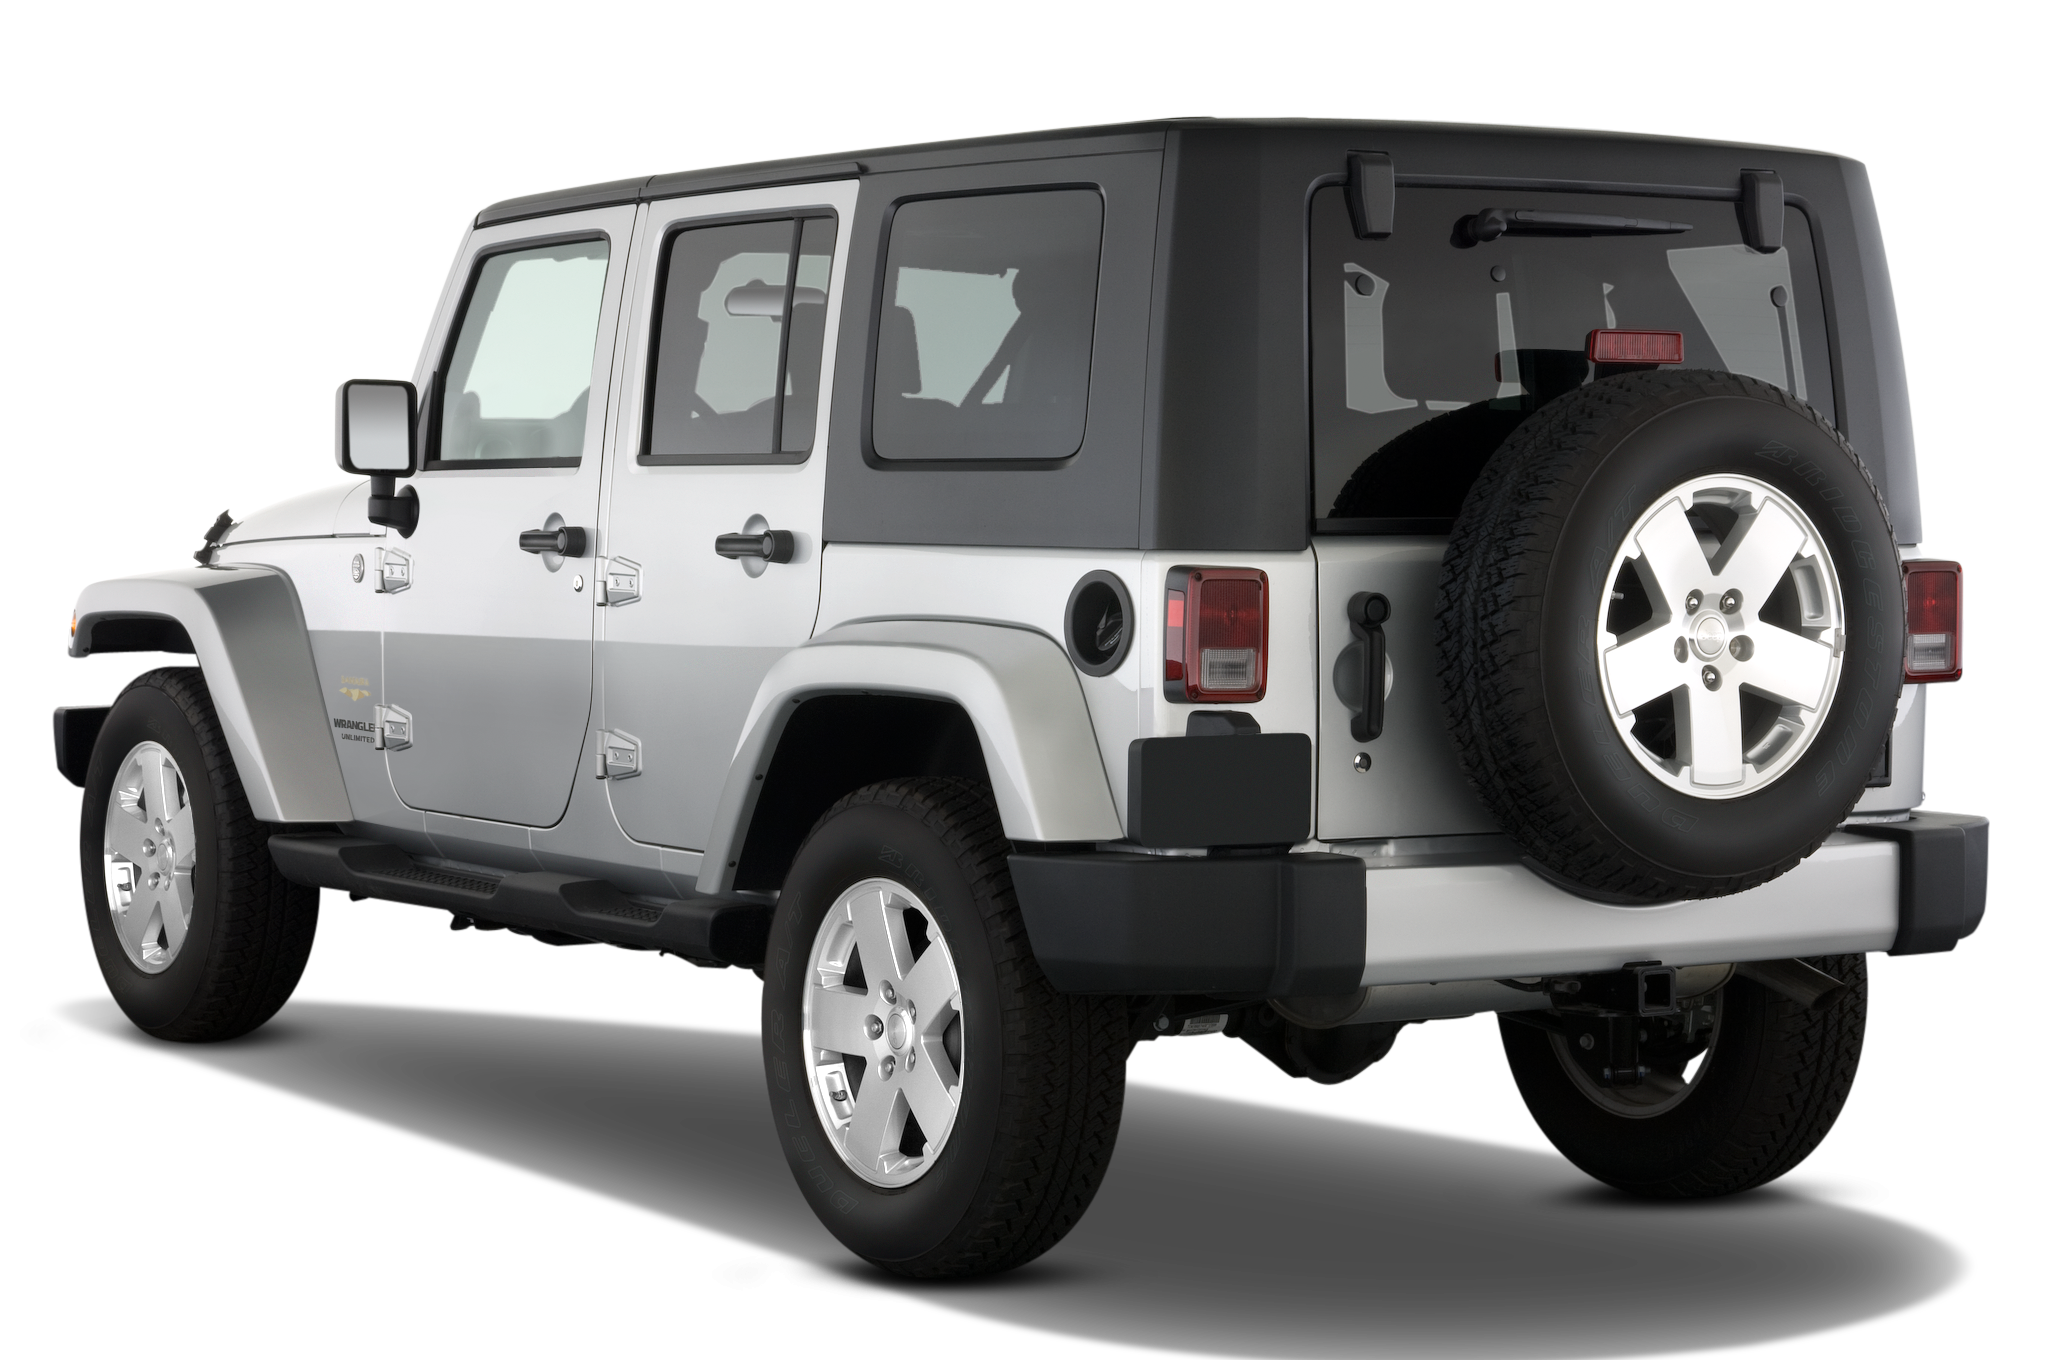 memphis marion revo jeep sport in wrangler citystatezip motors price unlimited hallum cars used vehicle arkansas